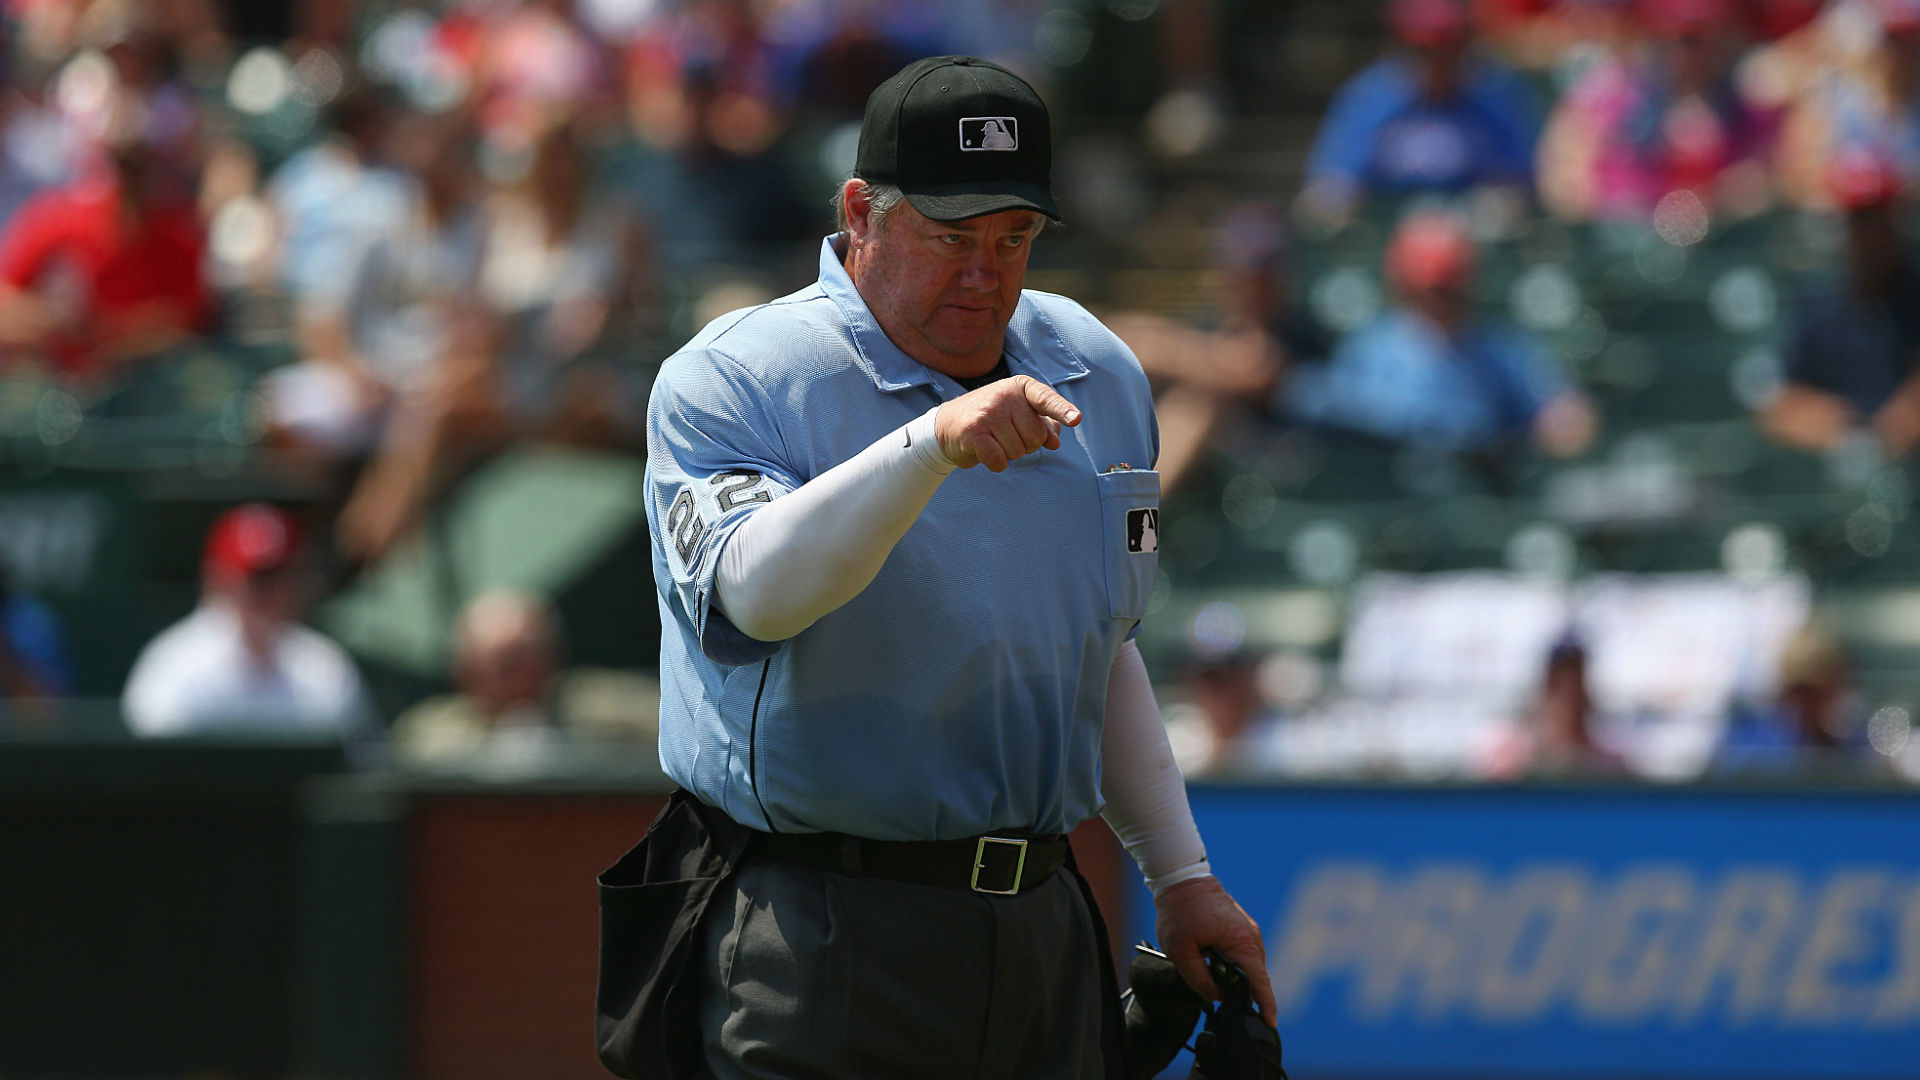 Joe West suspended for 3 games for comments about Beltre